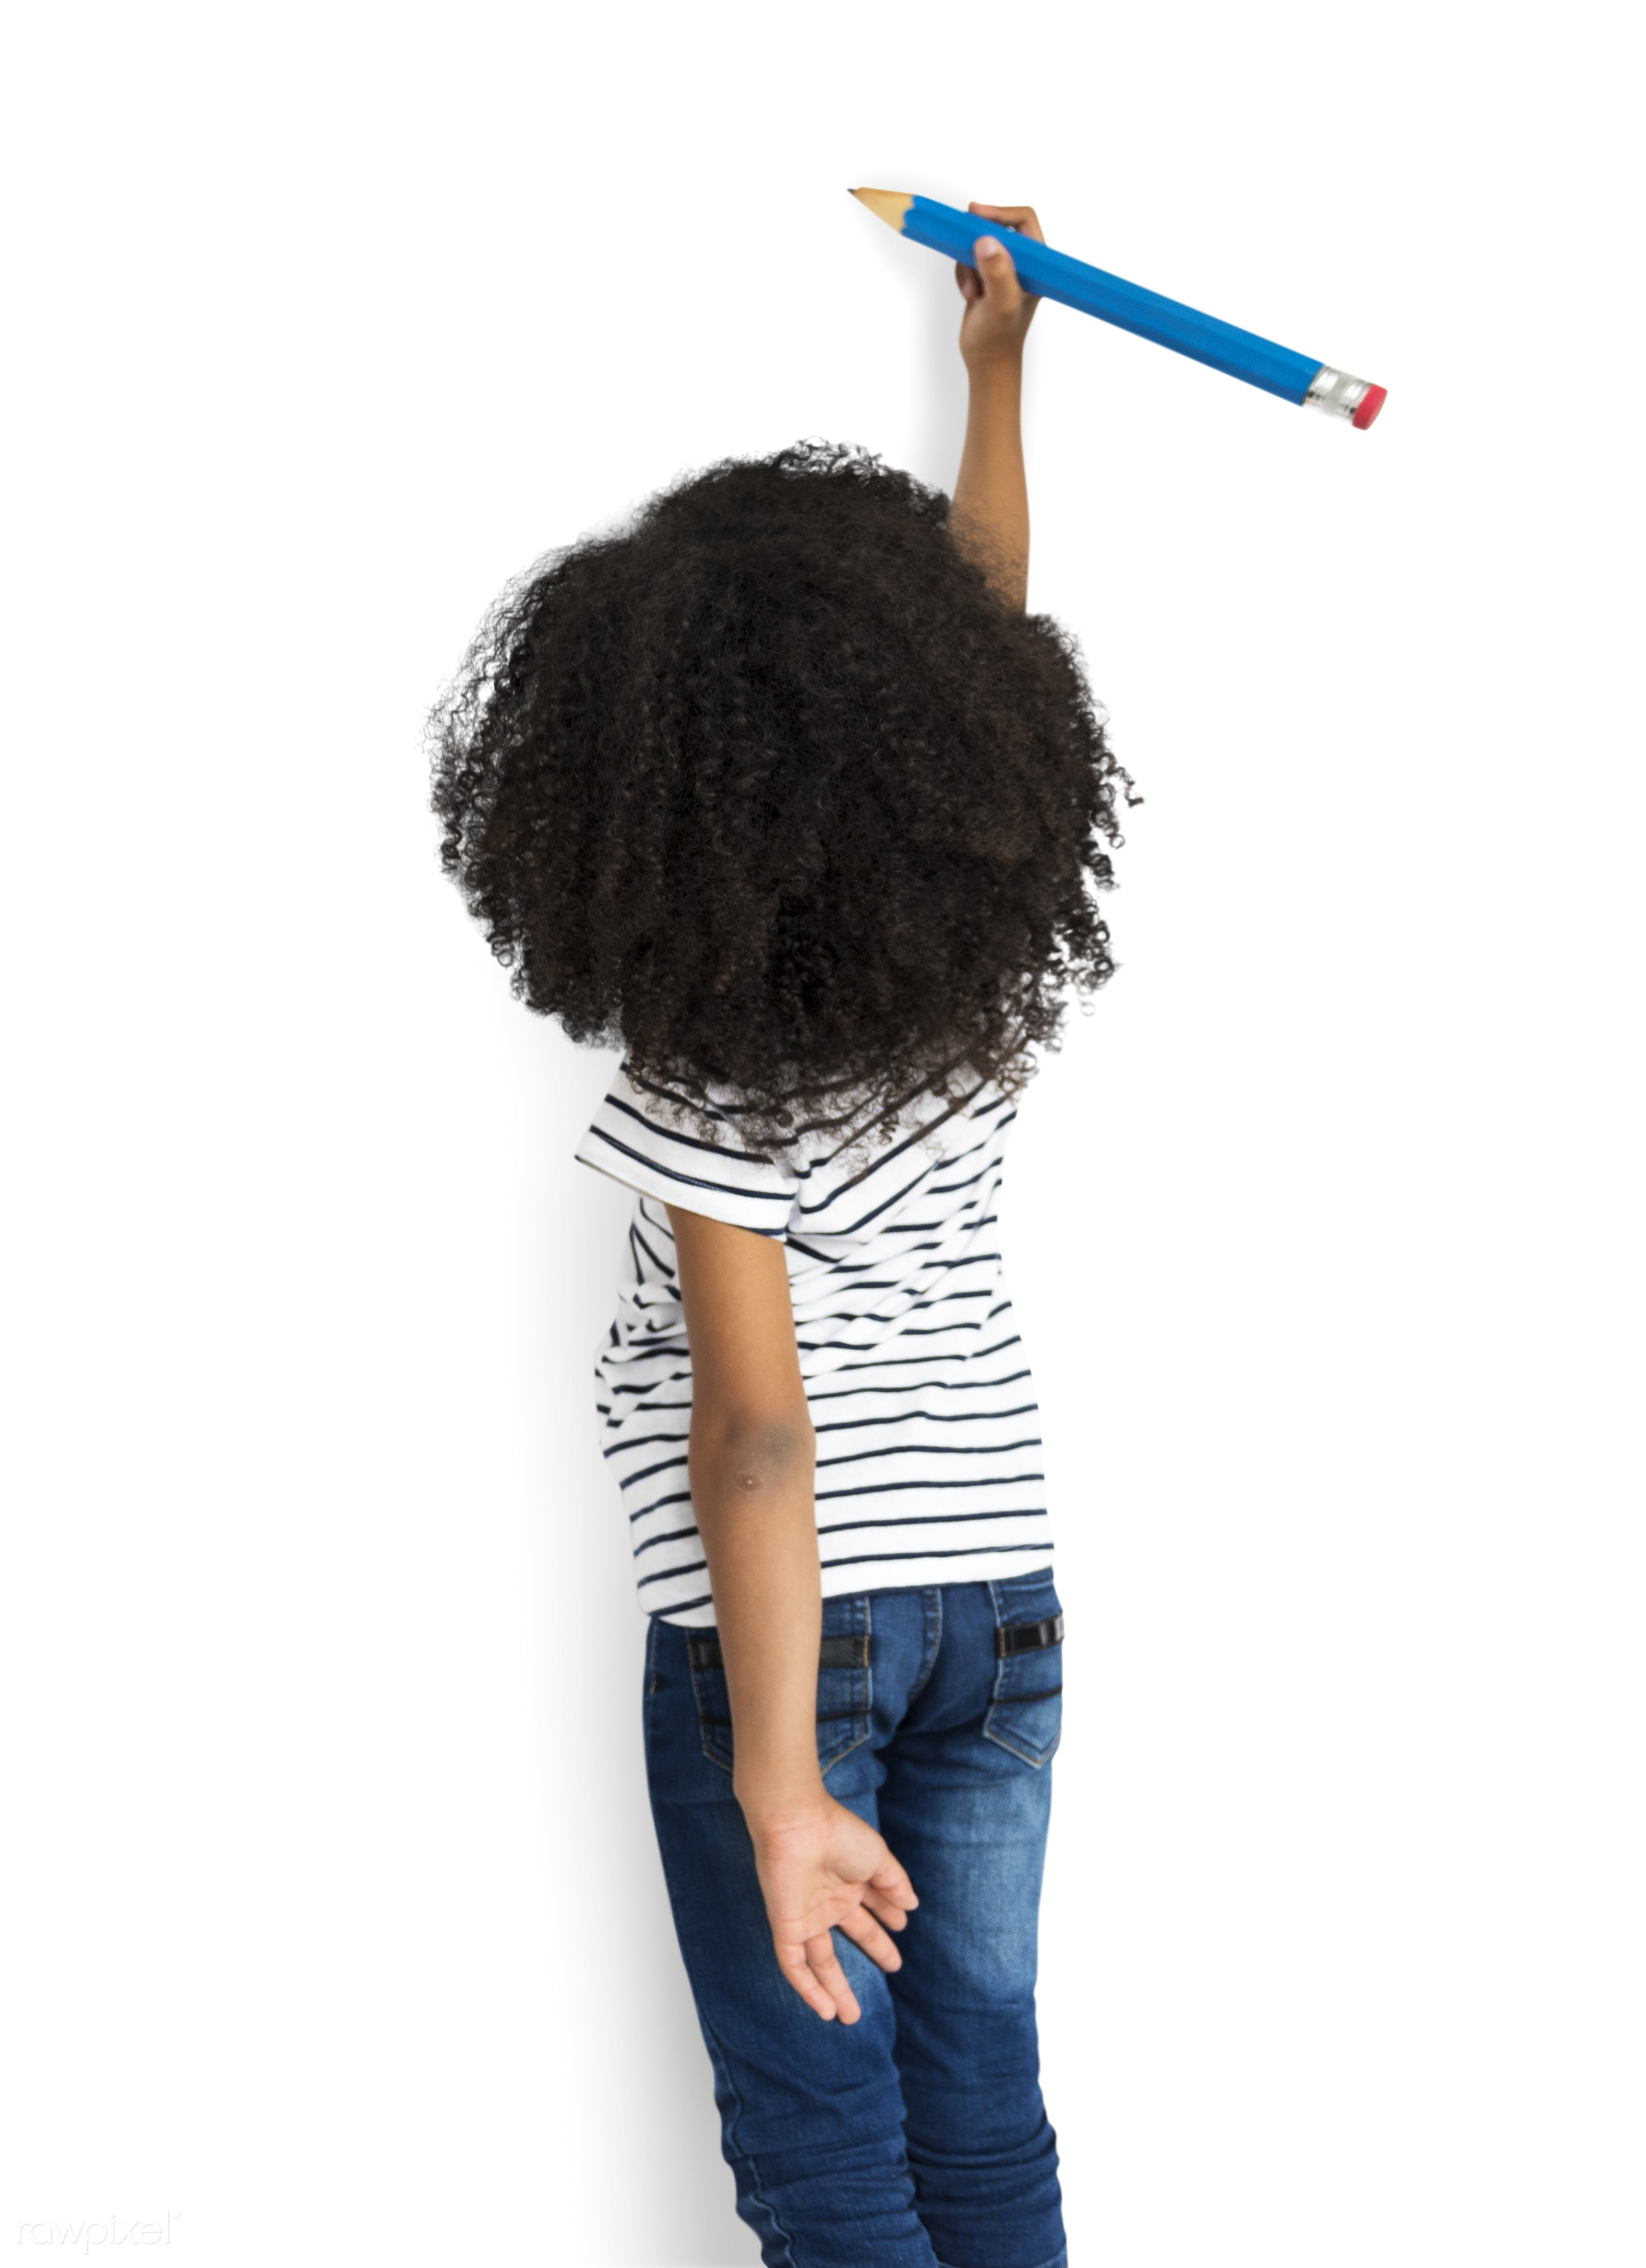 studio, expression, person, little, recreation, people, kid, isolated, little girl, paint, leisure, happiness, fun, shoot,...